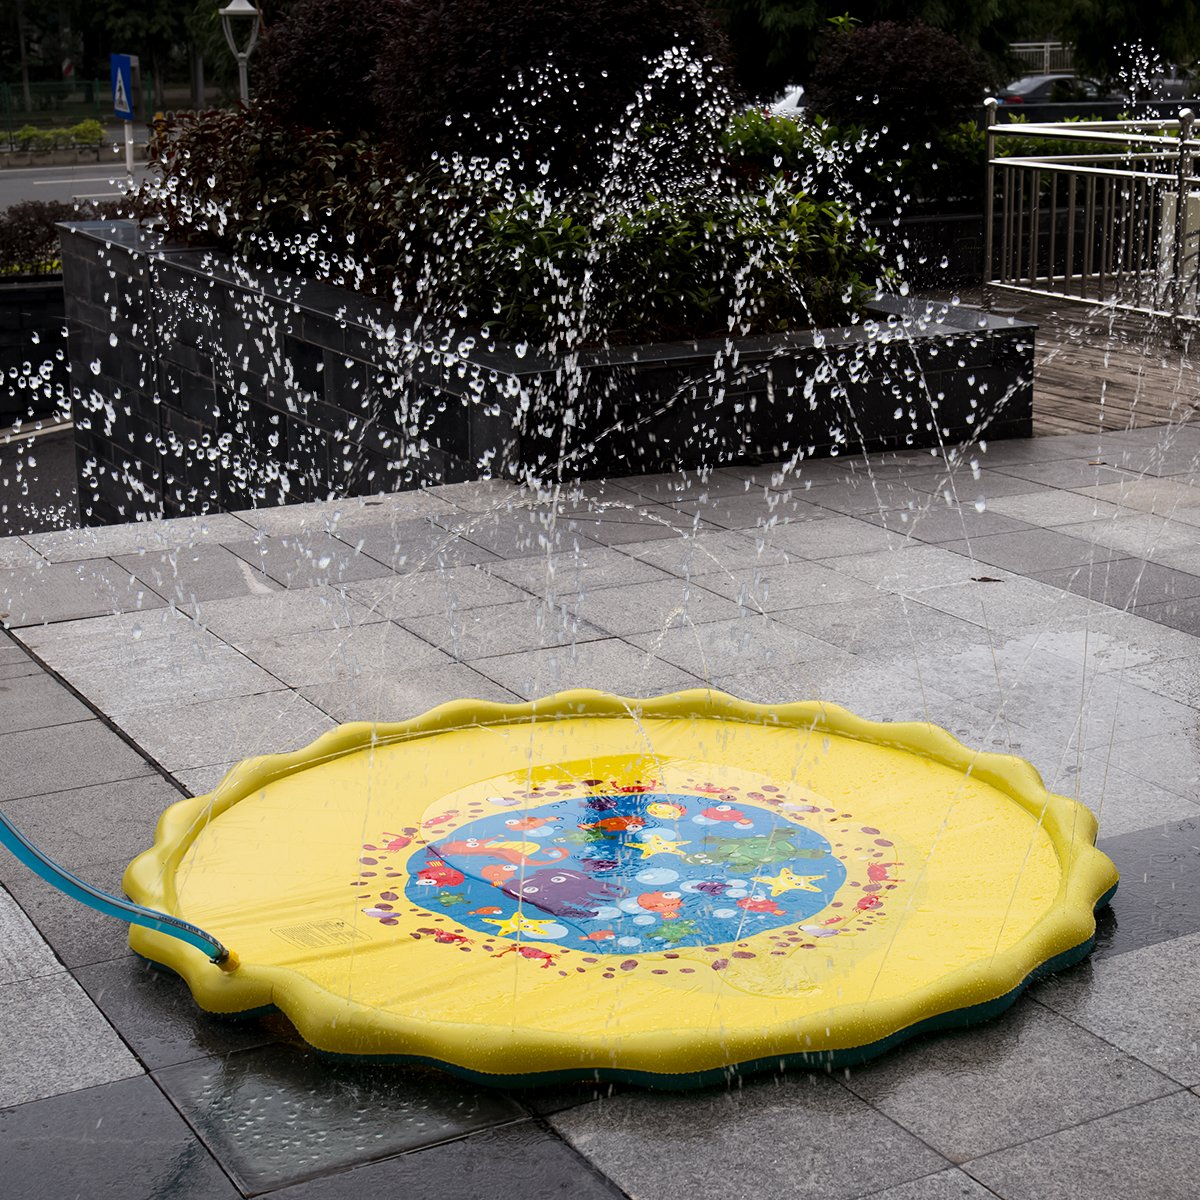 HALOFUN 67in-Diameter Sprinkle and Splash Play Mat for Kids (Yellow)